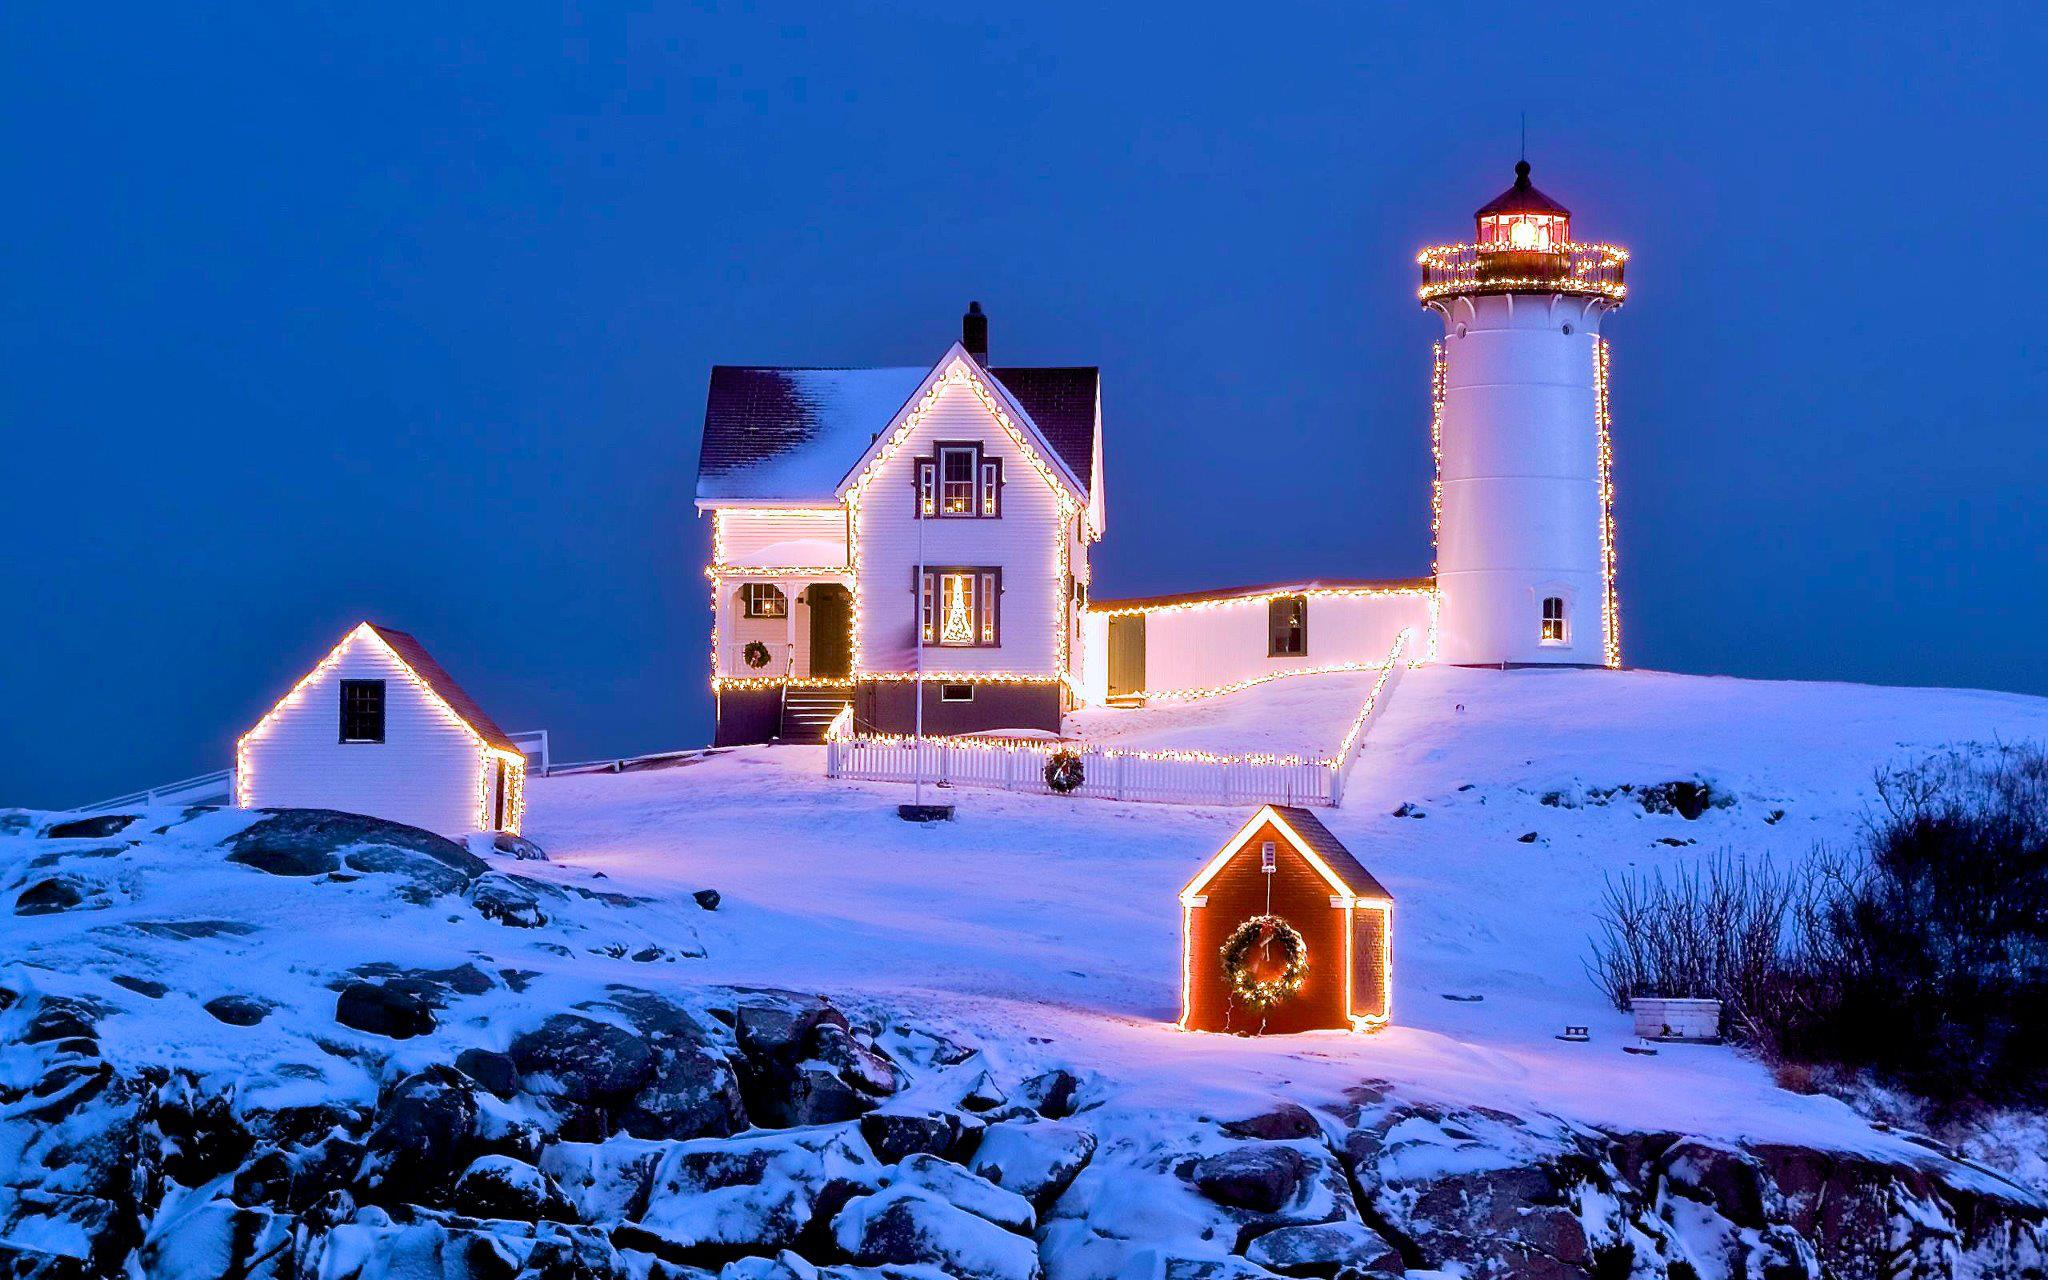 Cape_Neddick_Nubble_Light_in_Christmas_10